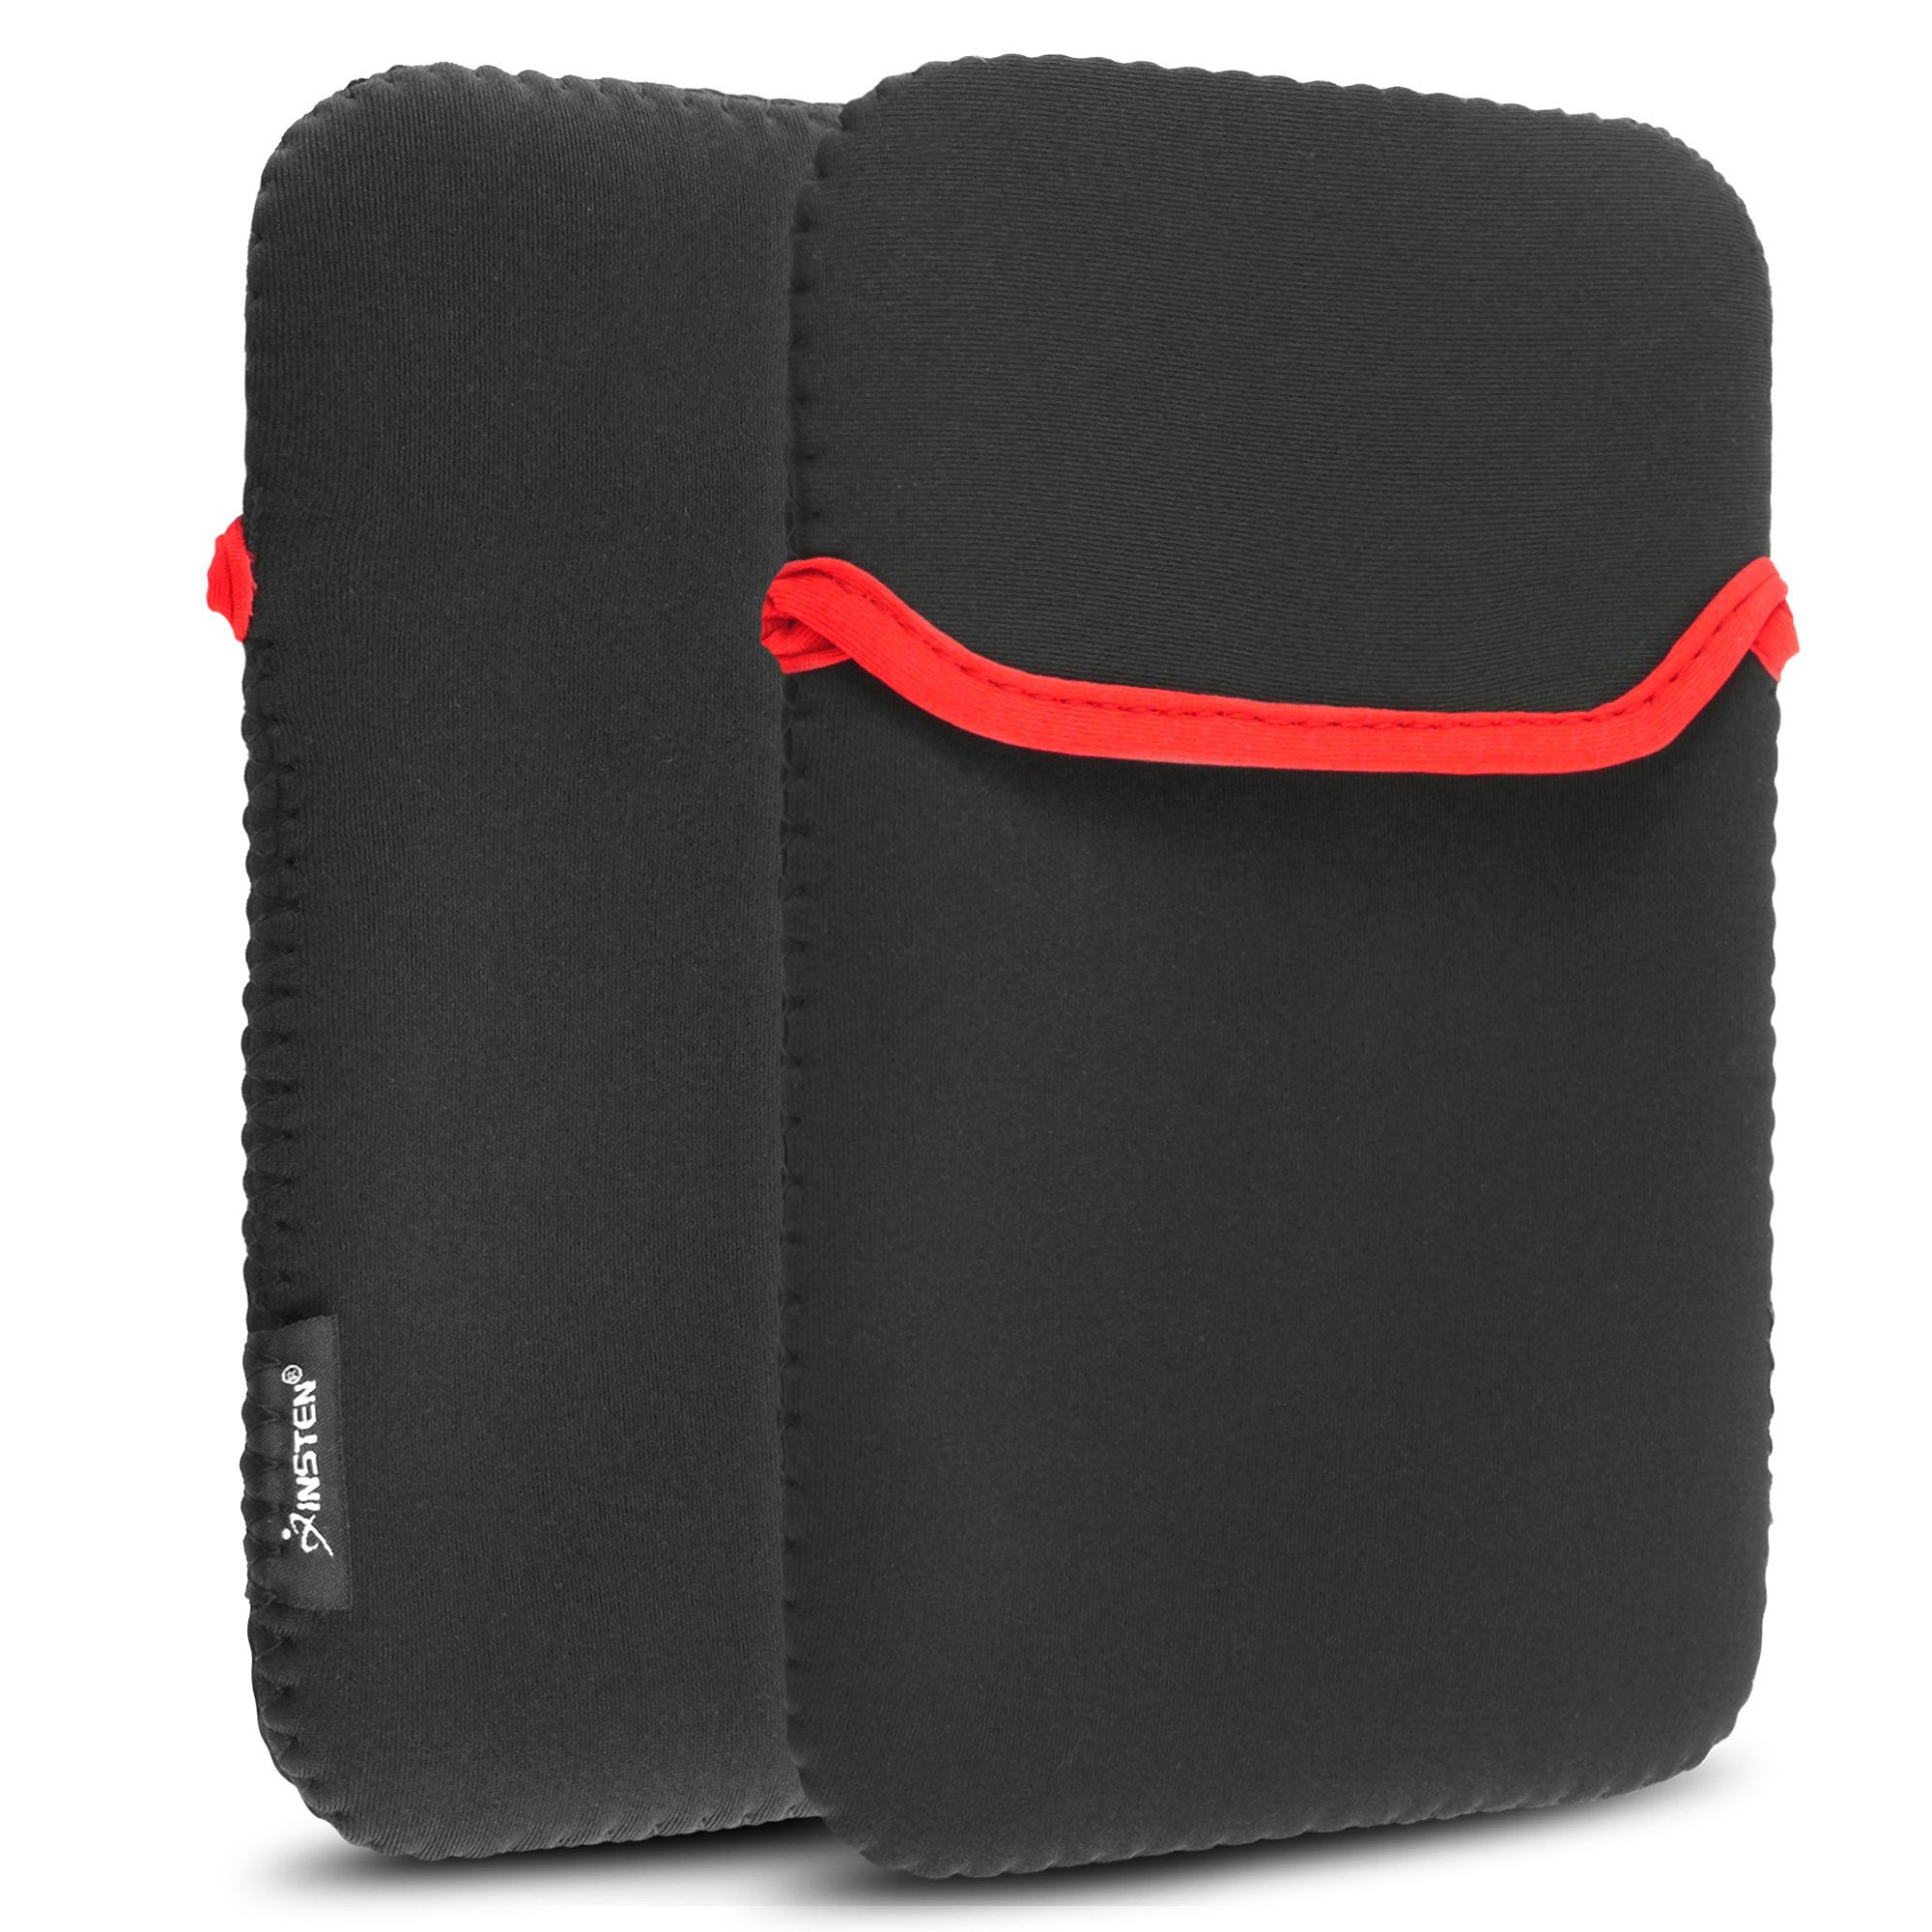 Insten Black Red 7 inch Tablet Sleeve Case Pouch For iPad Mini Retina Display Kindle Fire HD Nook Color Google Nexus 7